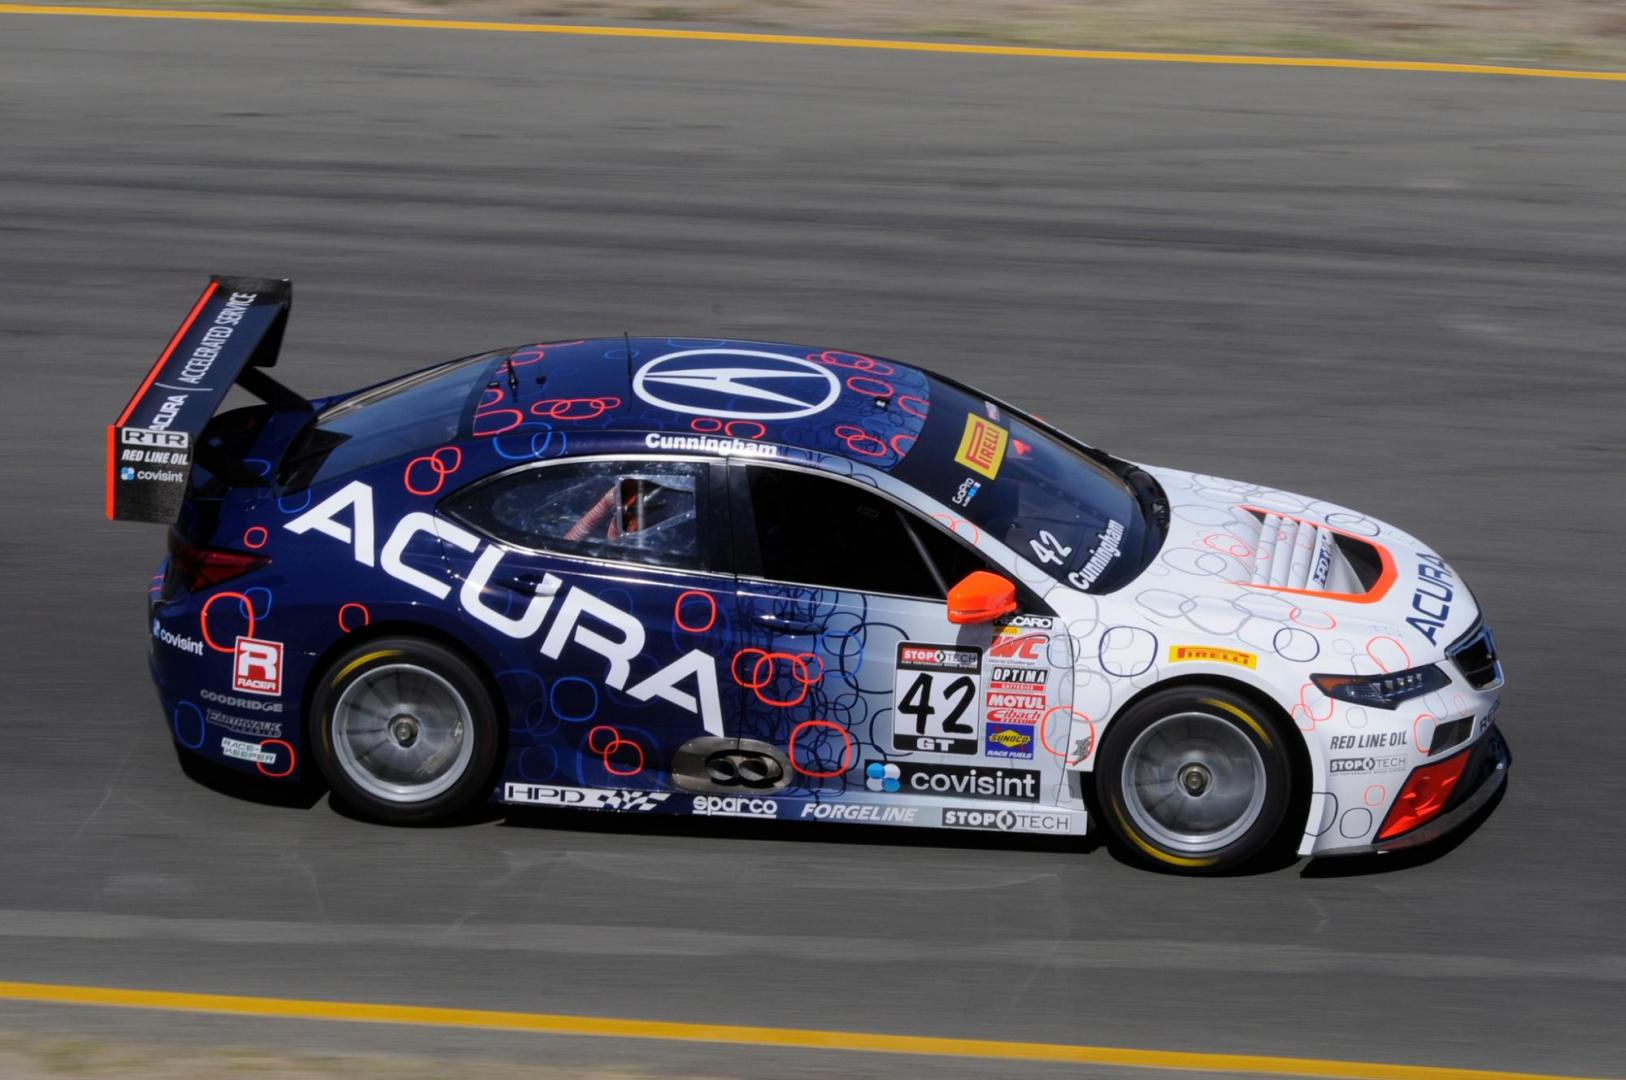 Acura-TLX-GT-race-car-on-track.jpg.jpeg